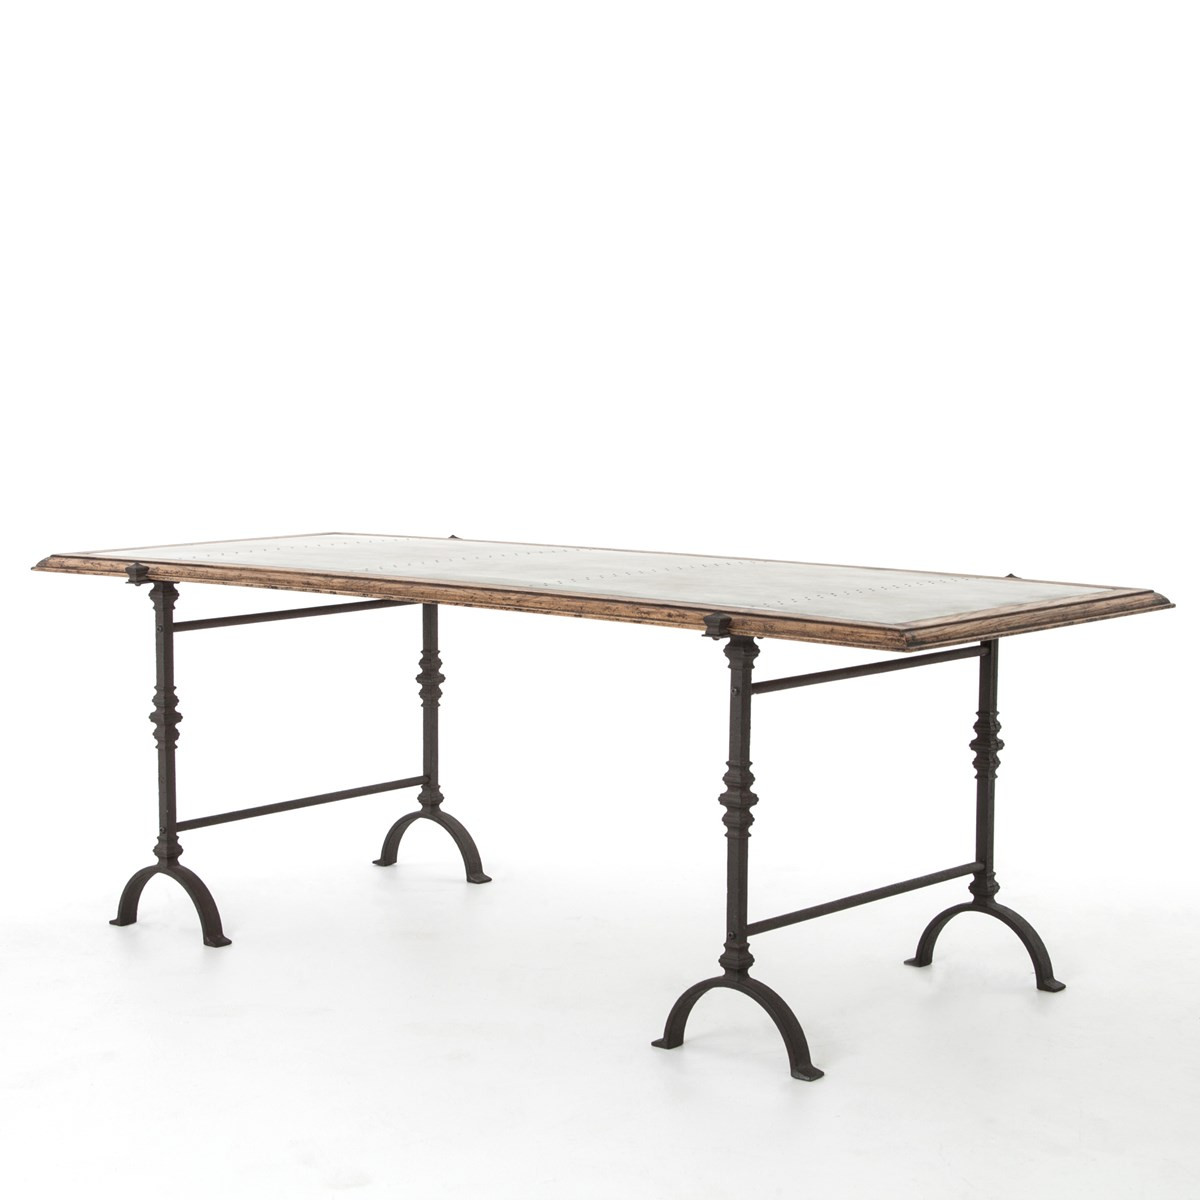 Galvanized iron rustic oak foundry dining table 87 for Table exterieur galvanise